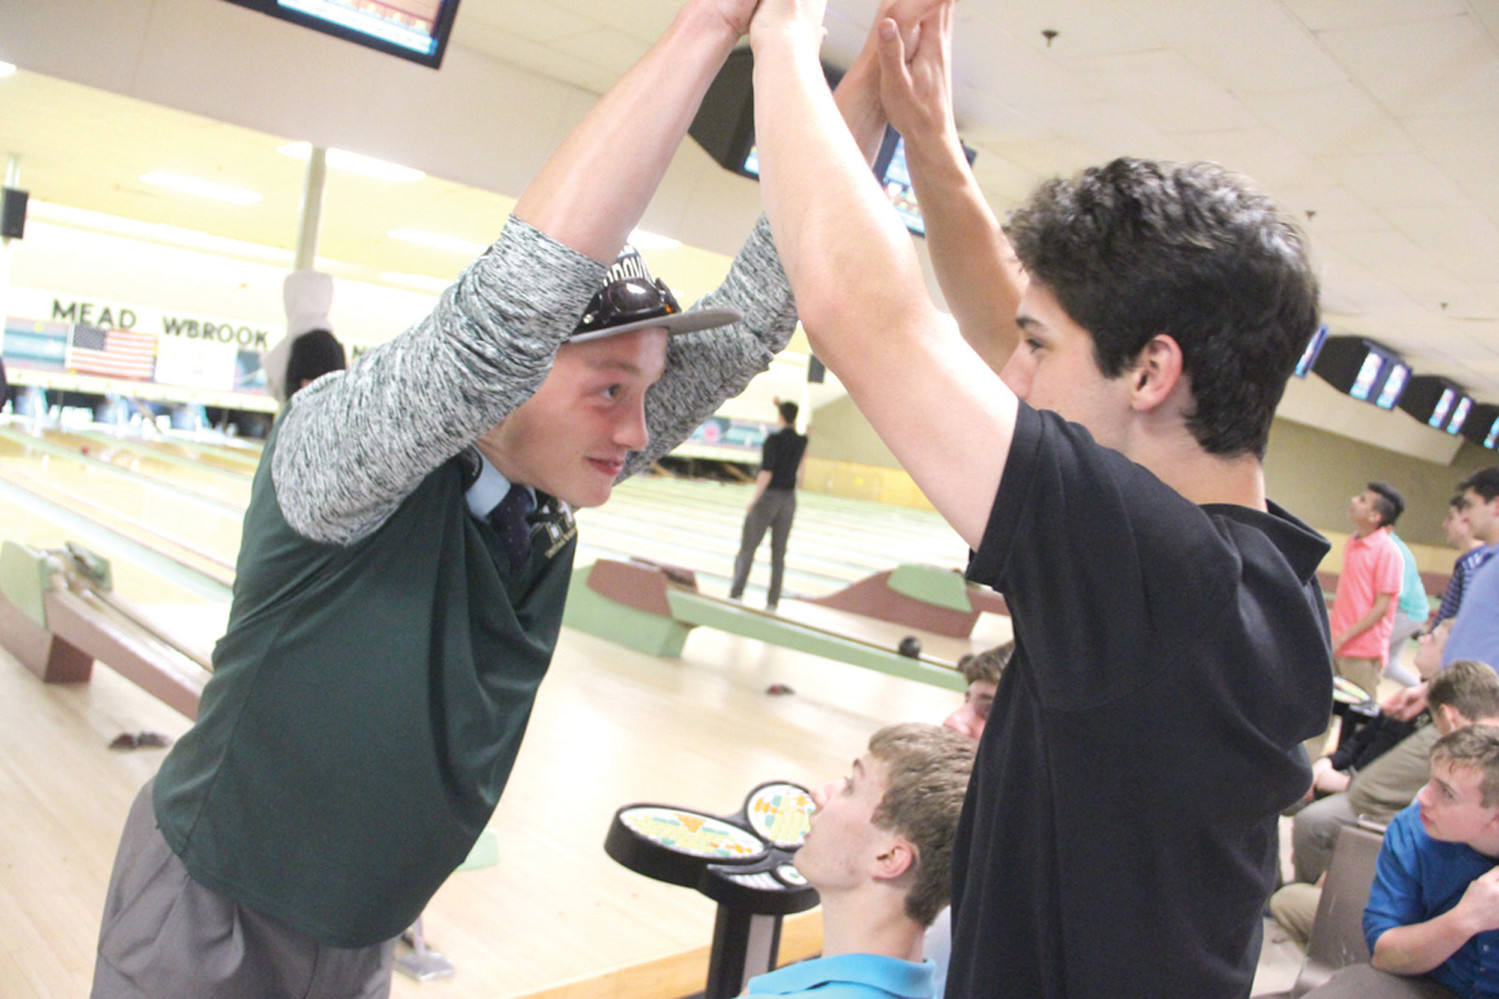 CELEBRATION: Steve Baker and student mentor Brian Schattle share a double high five after Baker knocked out 8 pins.